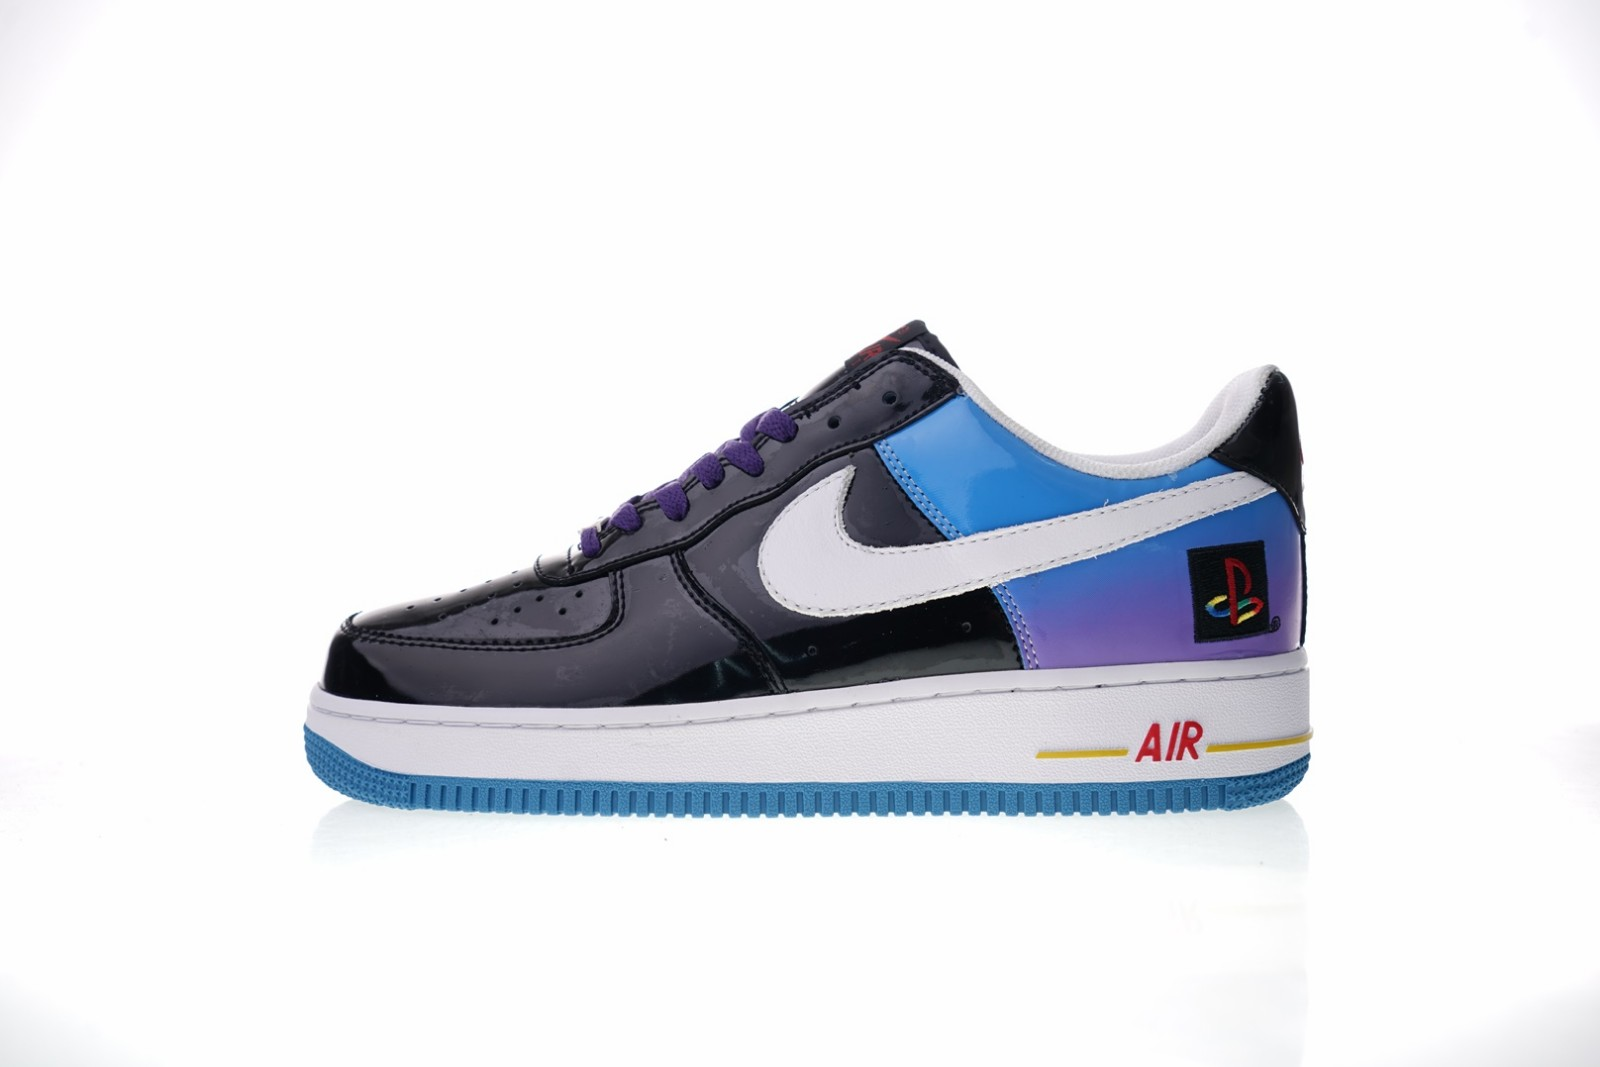 Air Black Varsity 056 Blue 1 Purple Playstation Red Force Low White Nike 306096 76gyfYbv